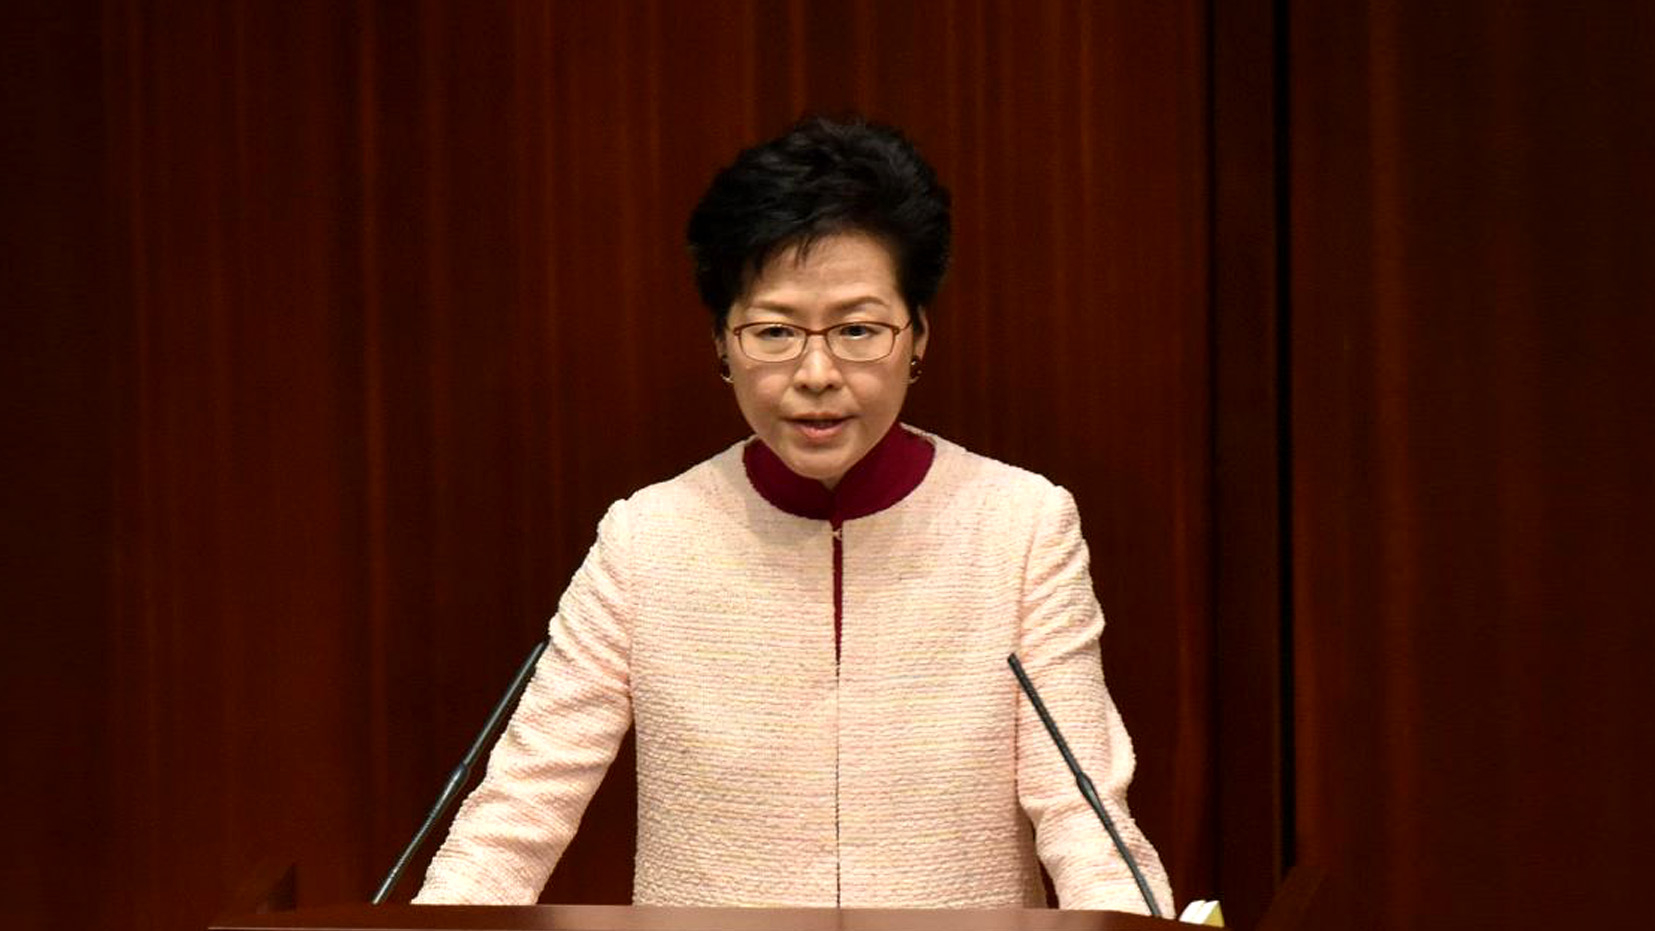 HKSAR chief executive promises continued effort to protect human rights, freedom